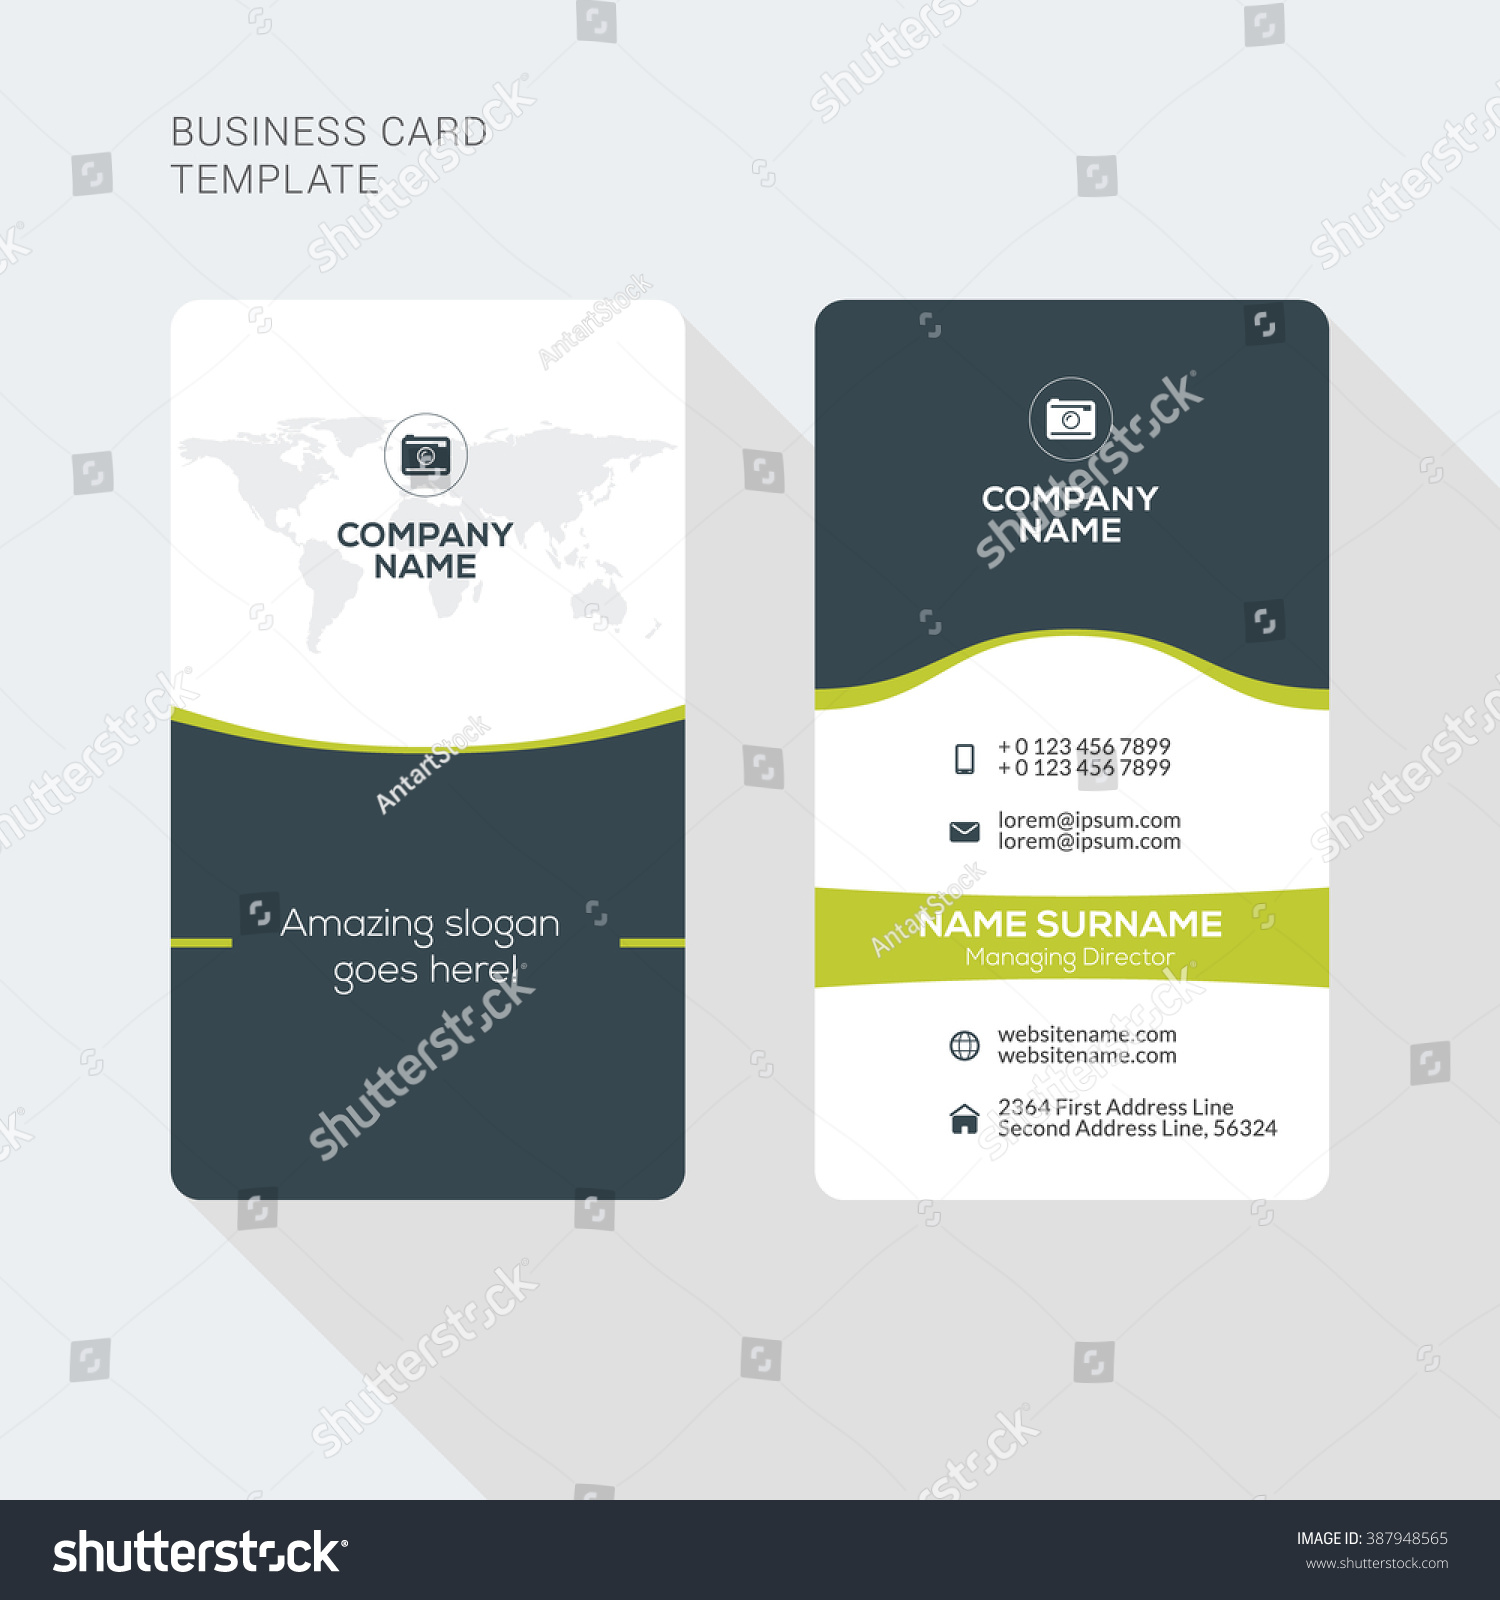 Modern creative clean two sided business stock vector 2018 modern creative and clean two sided business card template flat style vector illustration vertical cheaphphosting Gallery